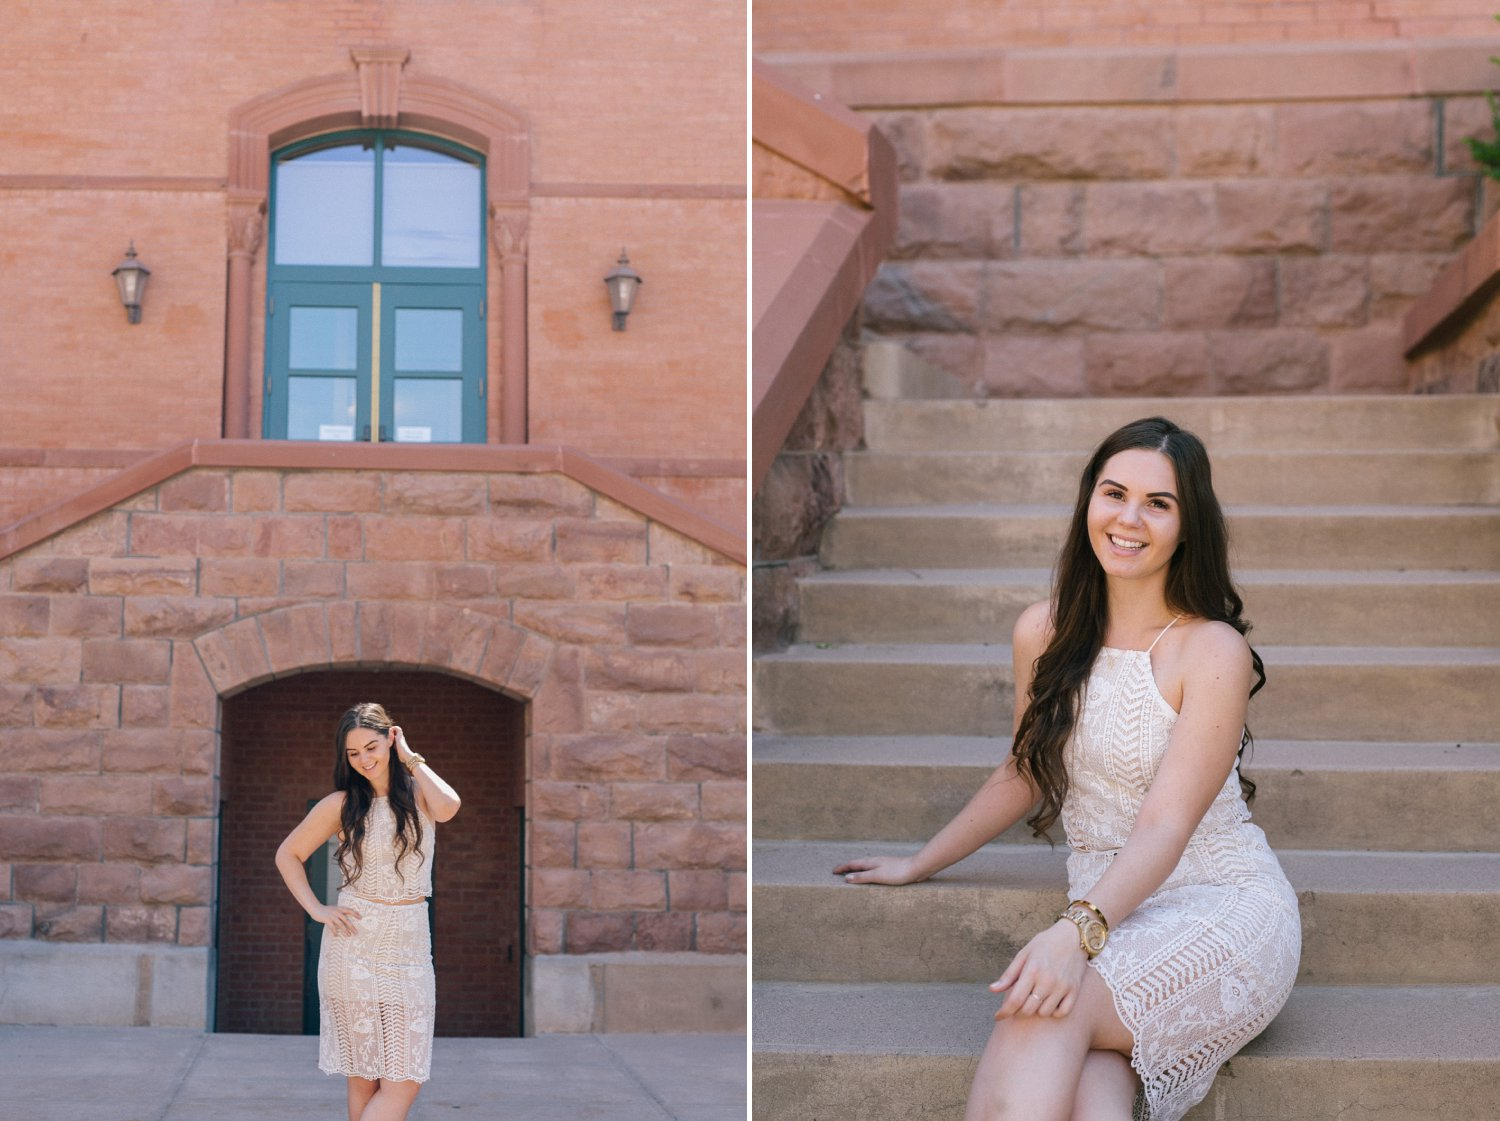 Arizona college graduate portrait session